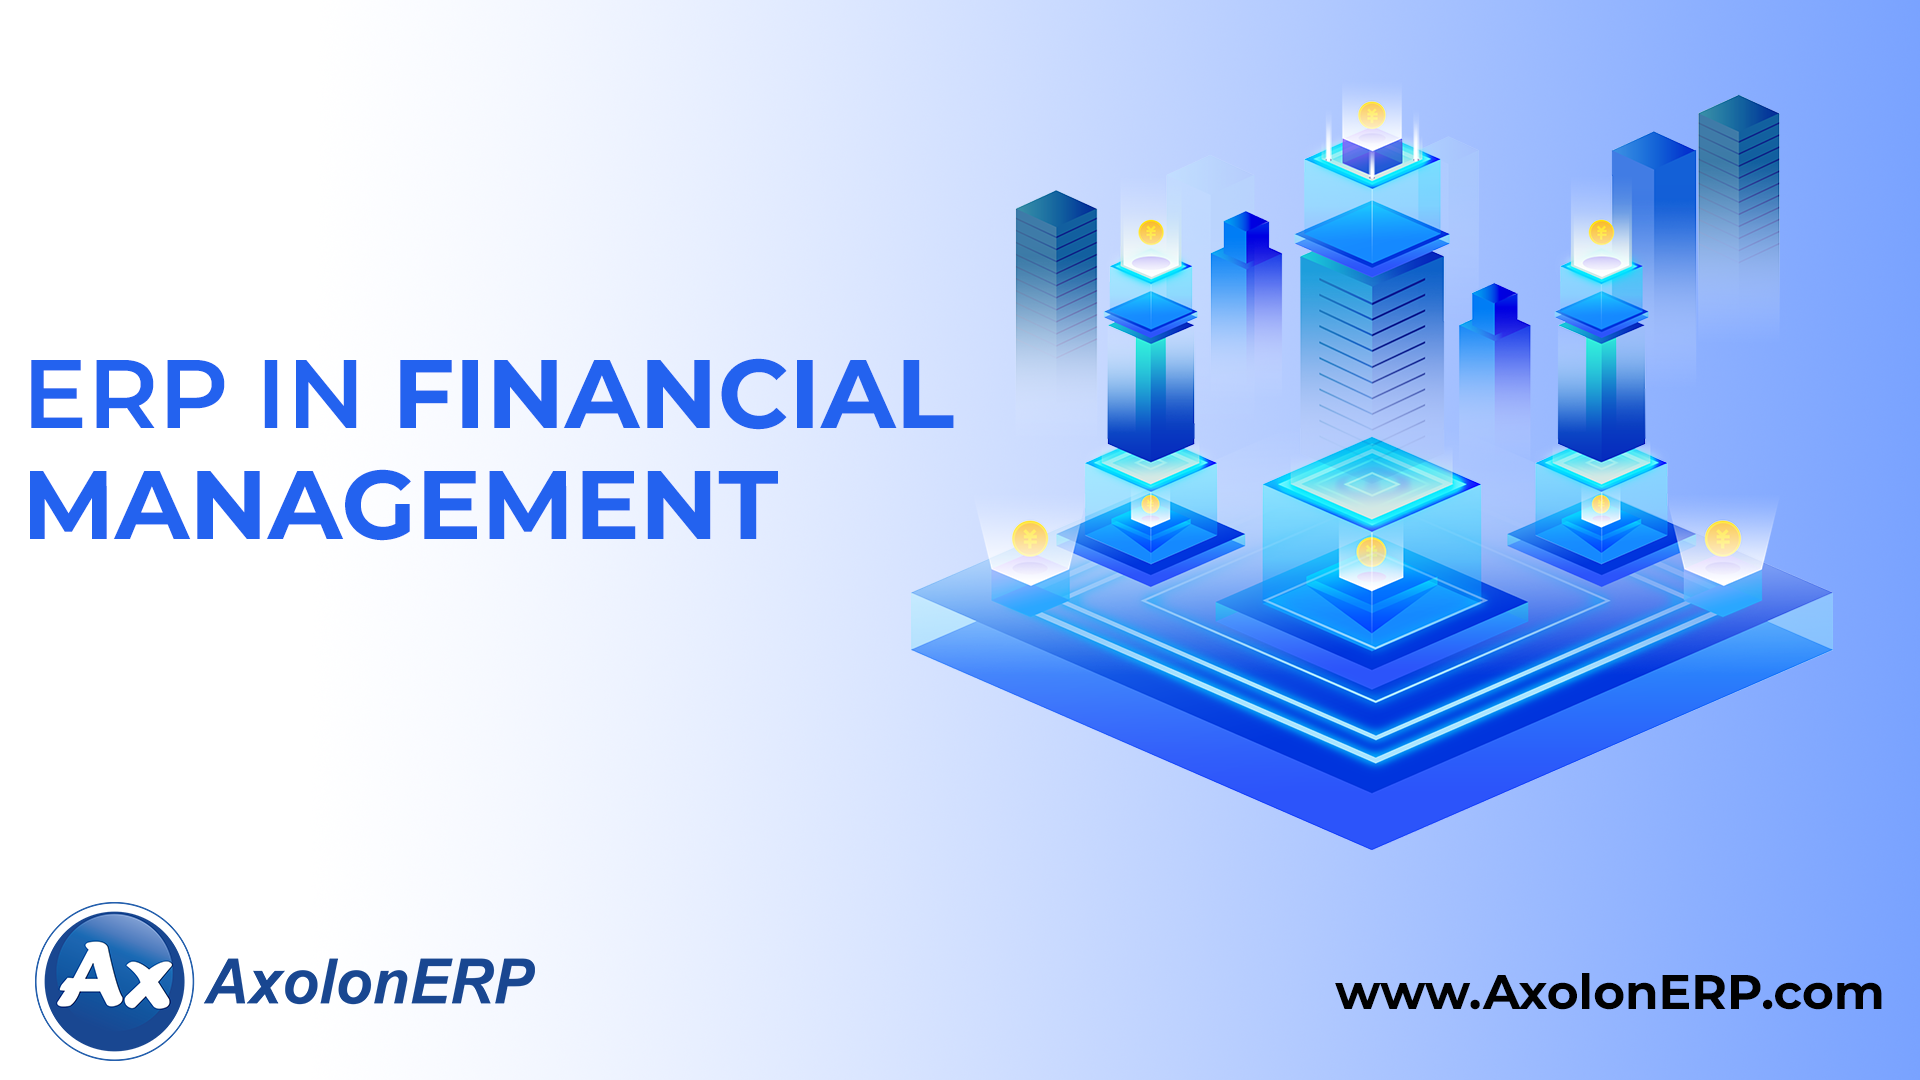 ERP in financial management